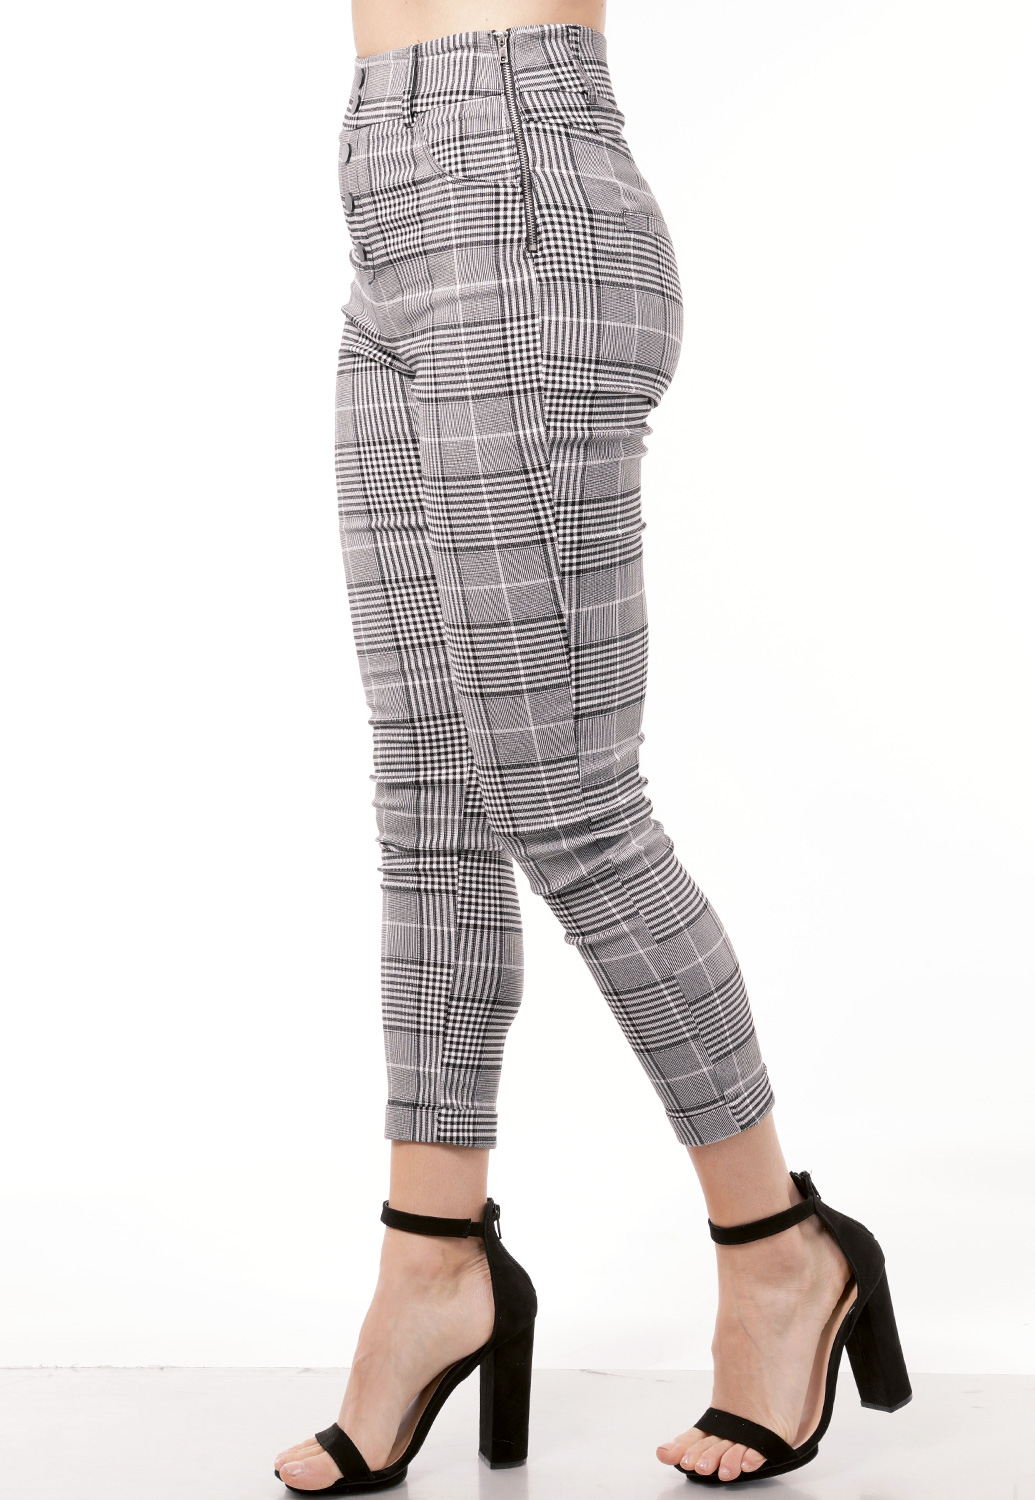 Glen Plaid Dressy Pants